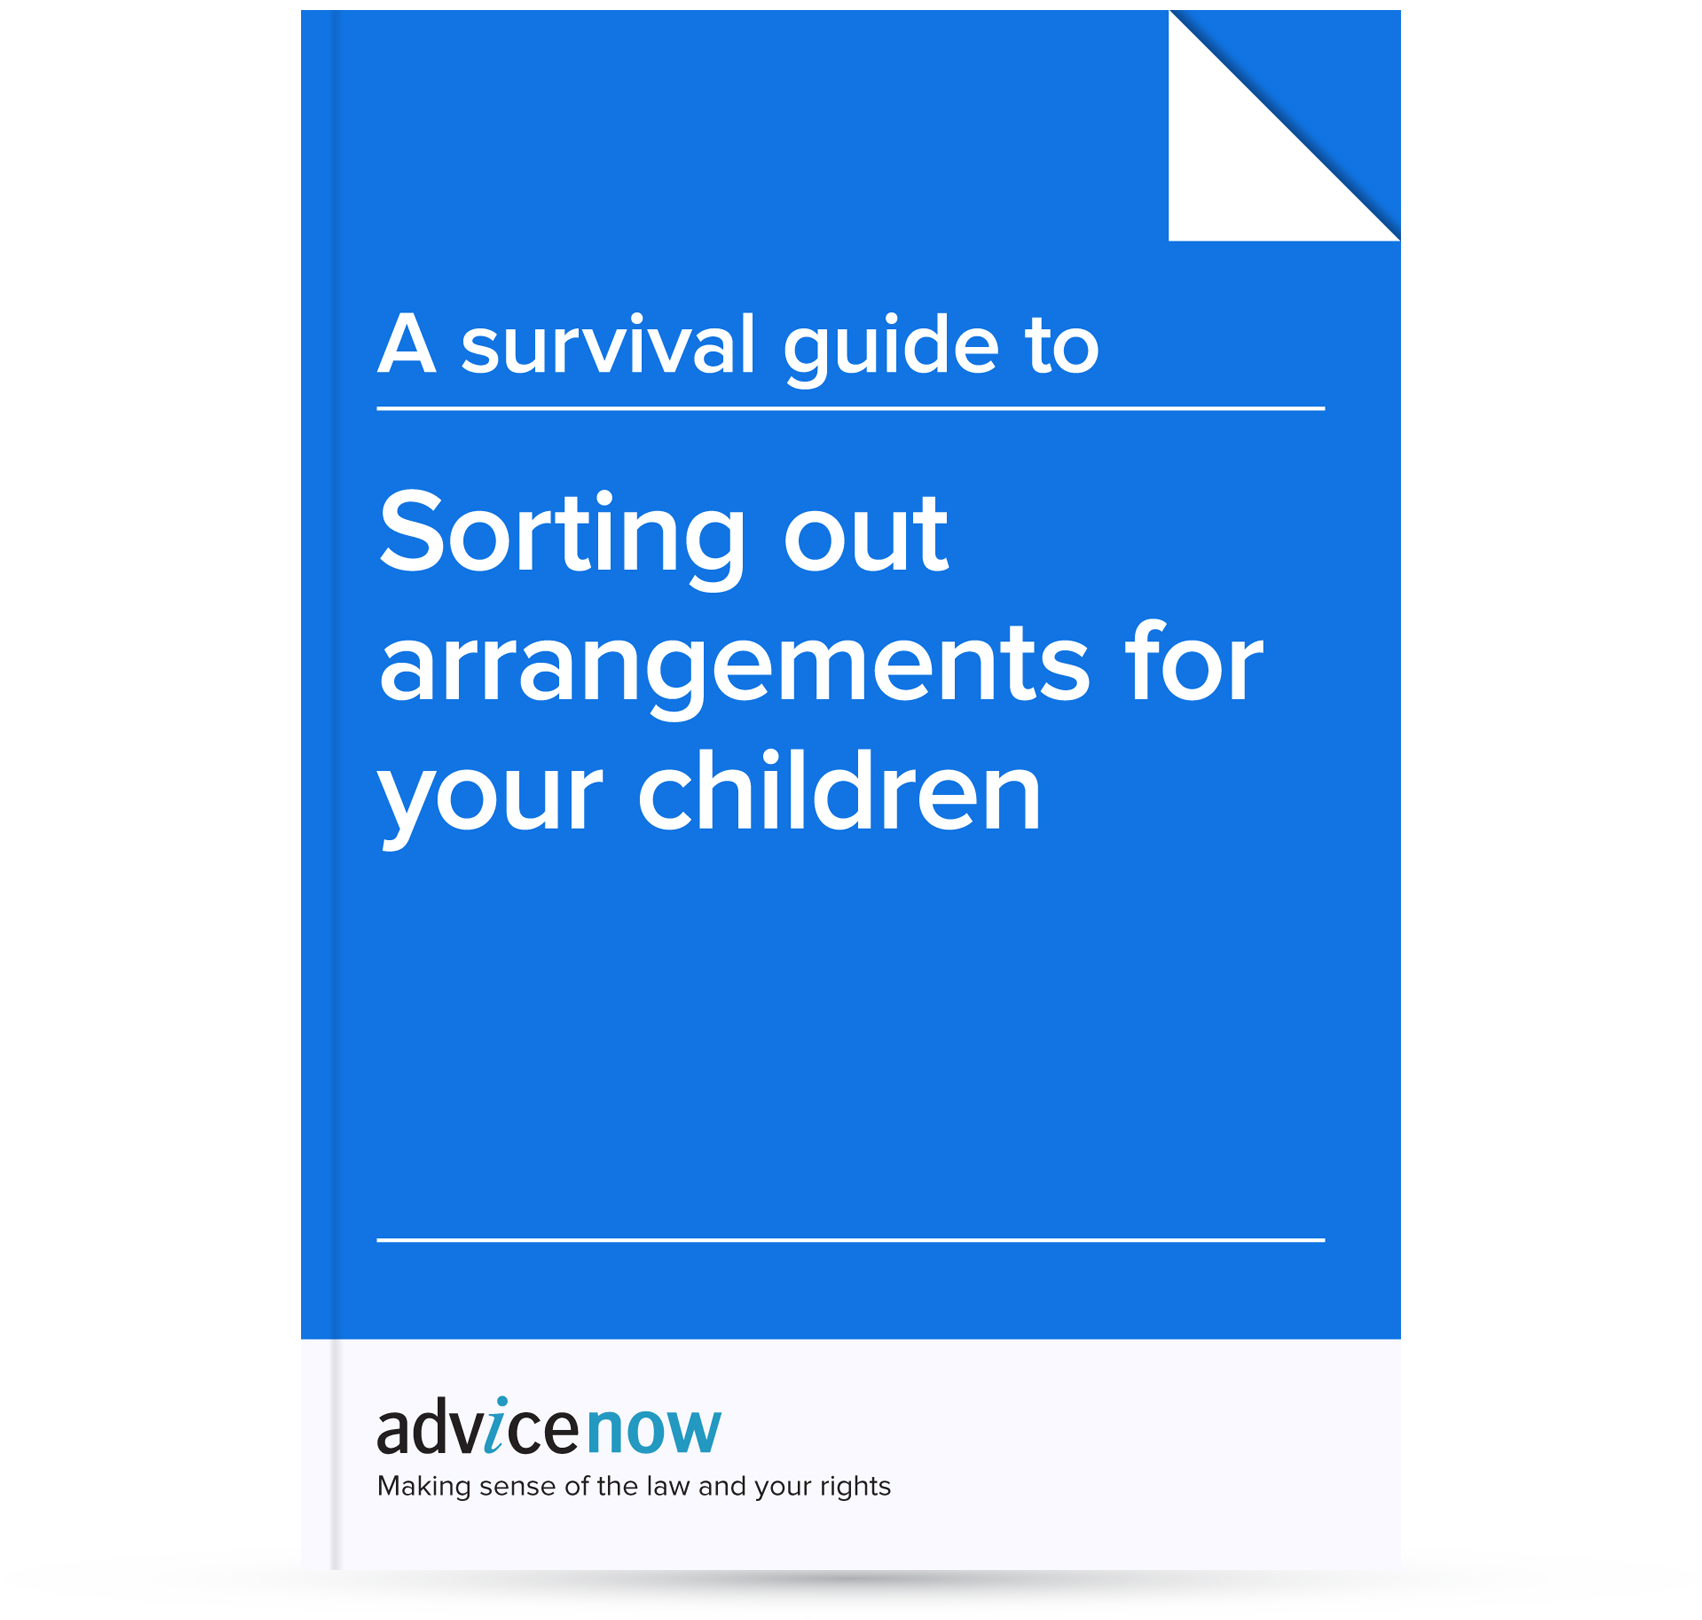 A Survival Guide To Sorting Out Arrangements For Your Children  Advicenow